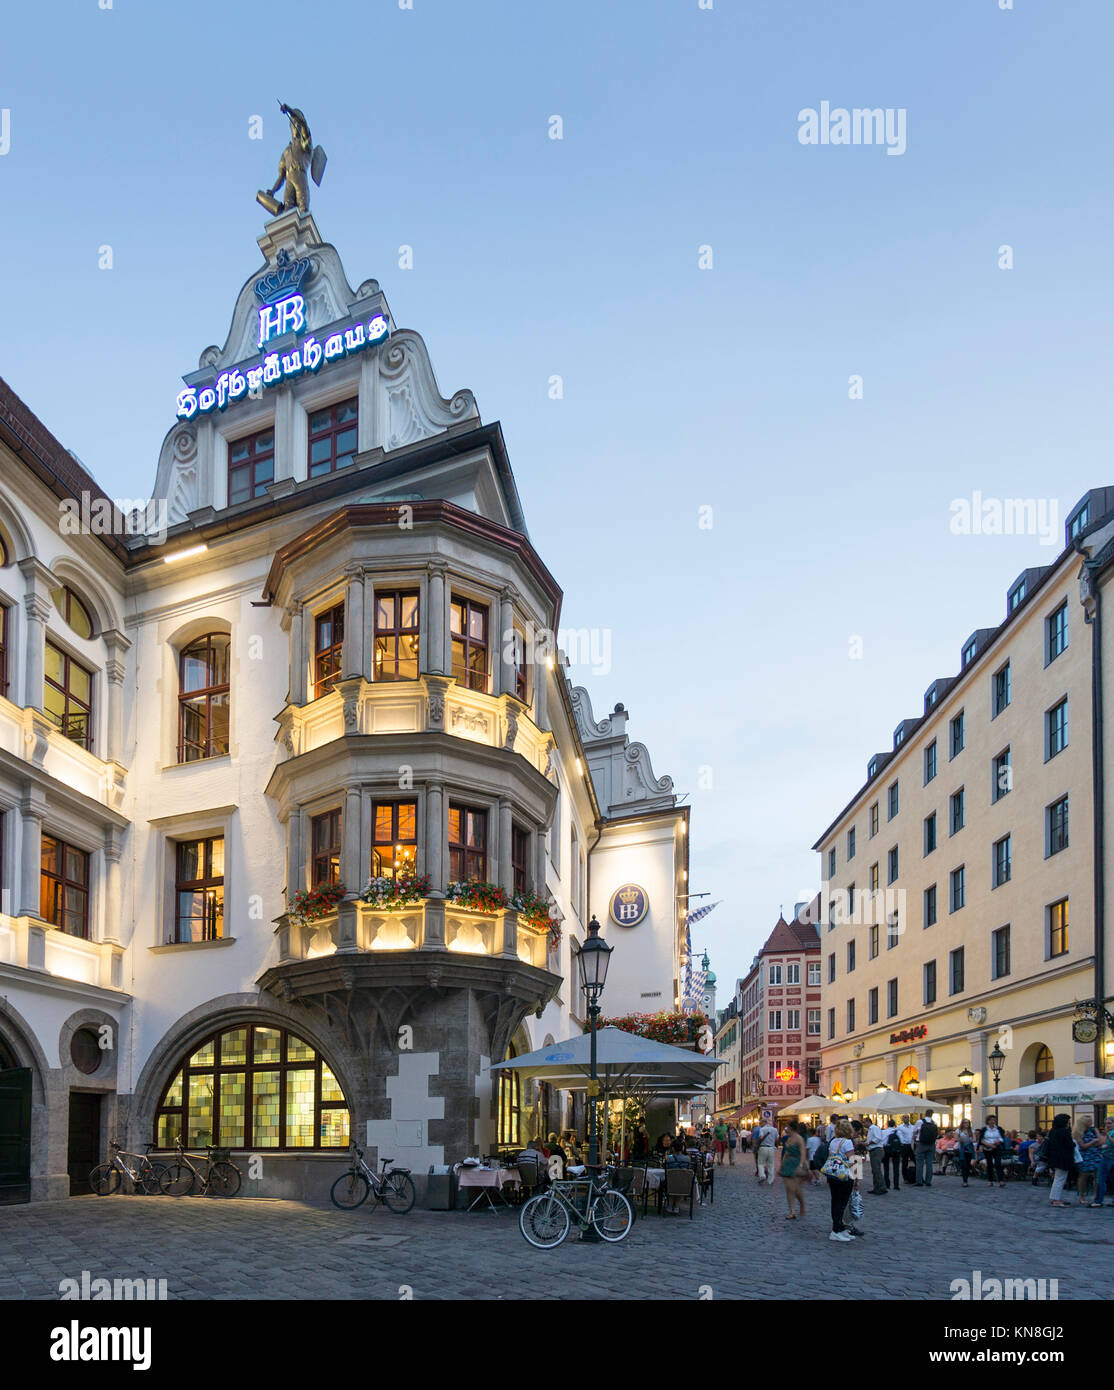 Hofbraeuhaus in Munich, Germany - Stock Image